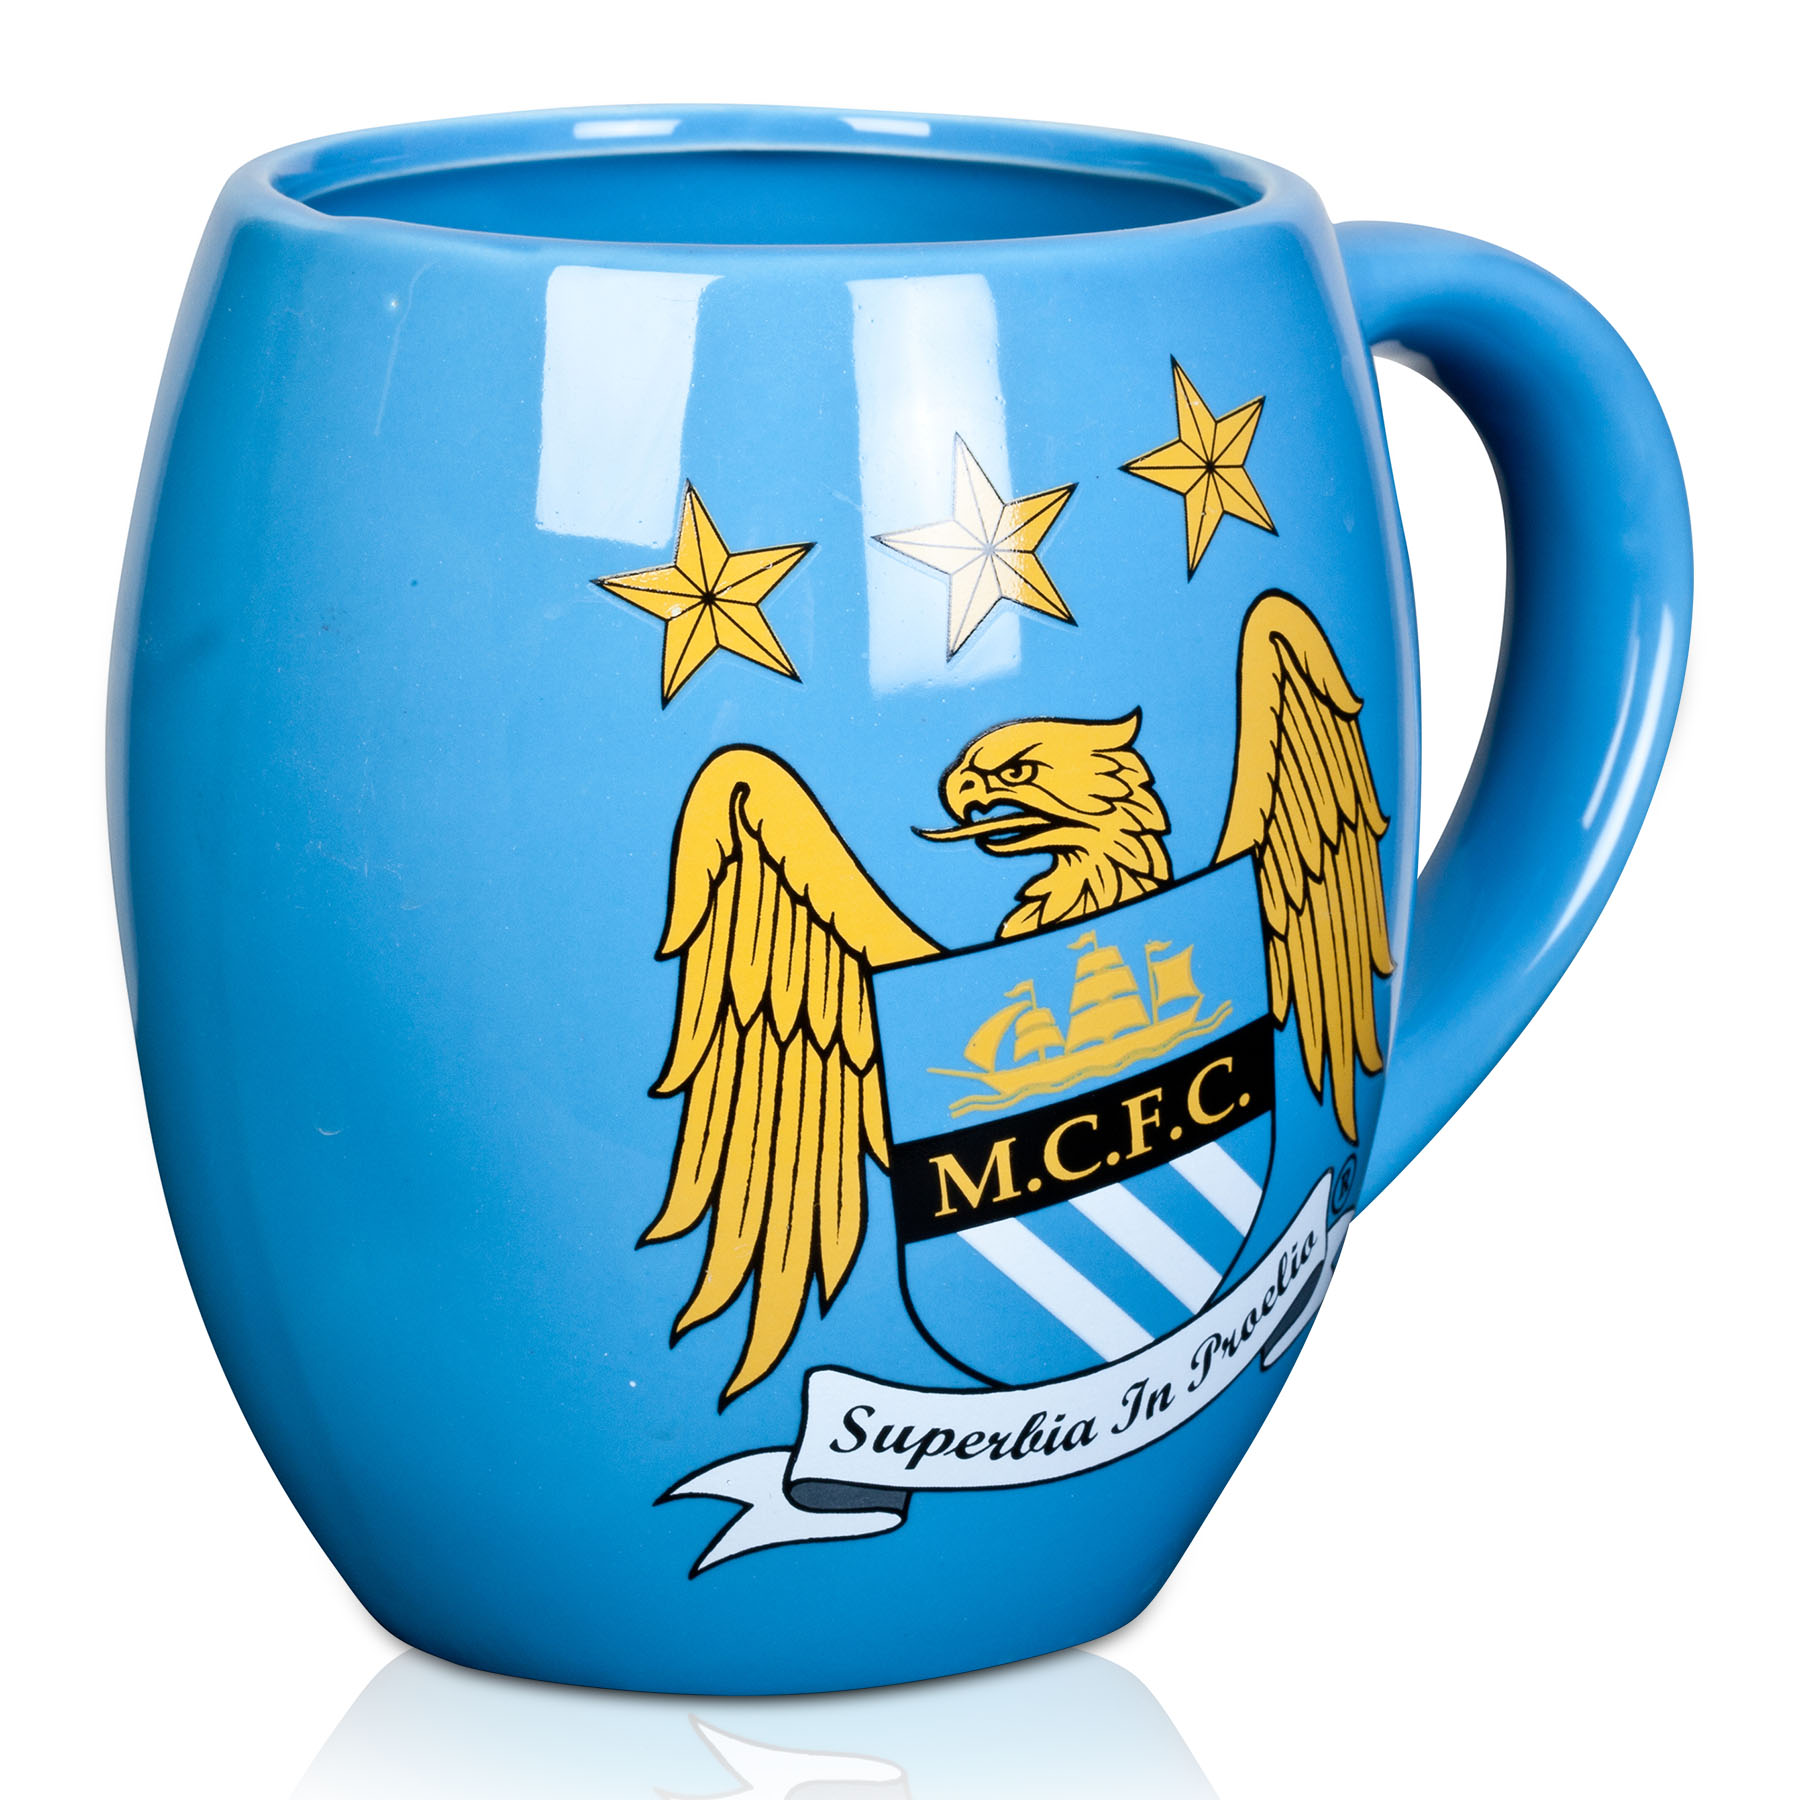 Manchester City Tea Tub Mug